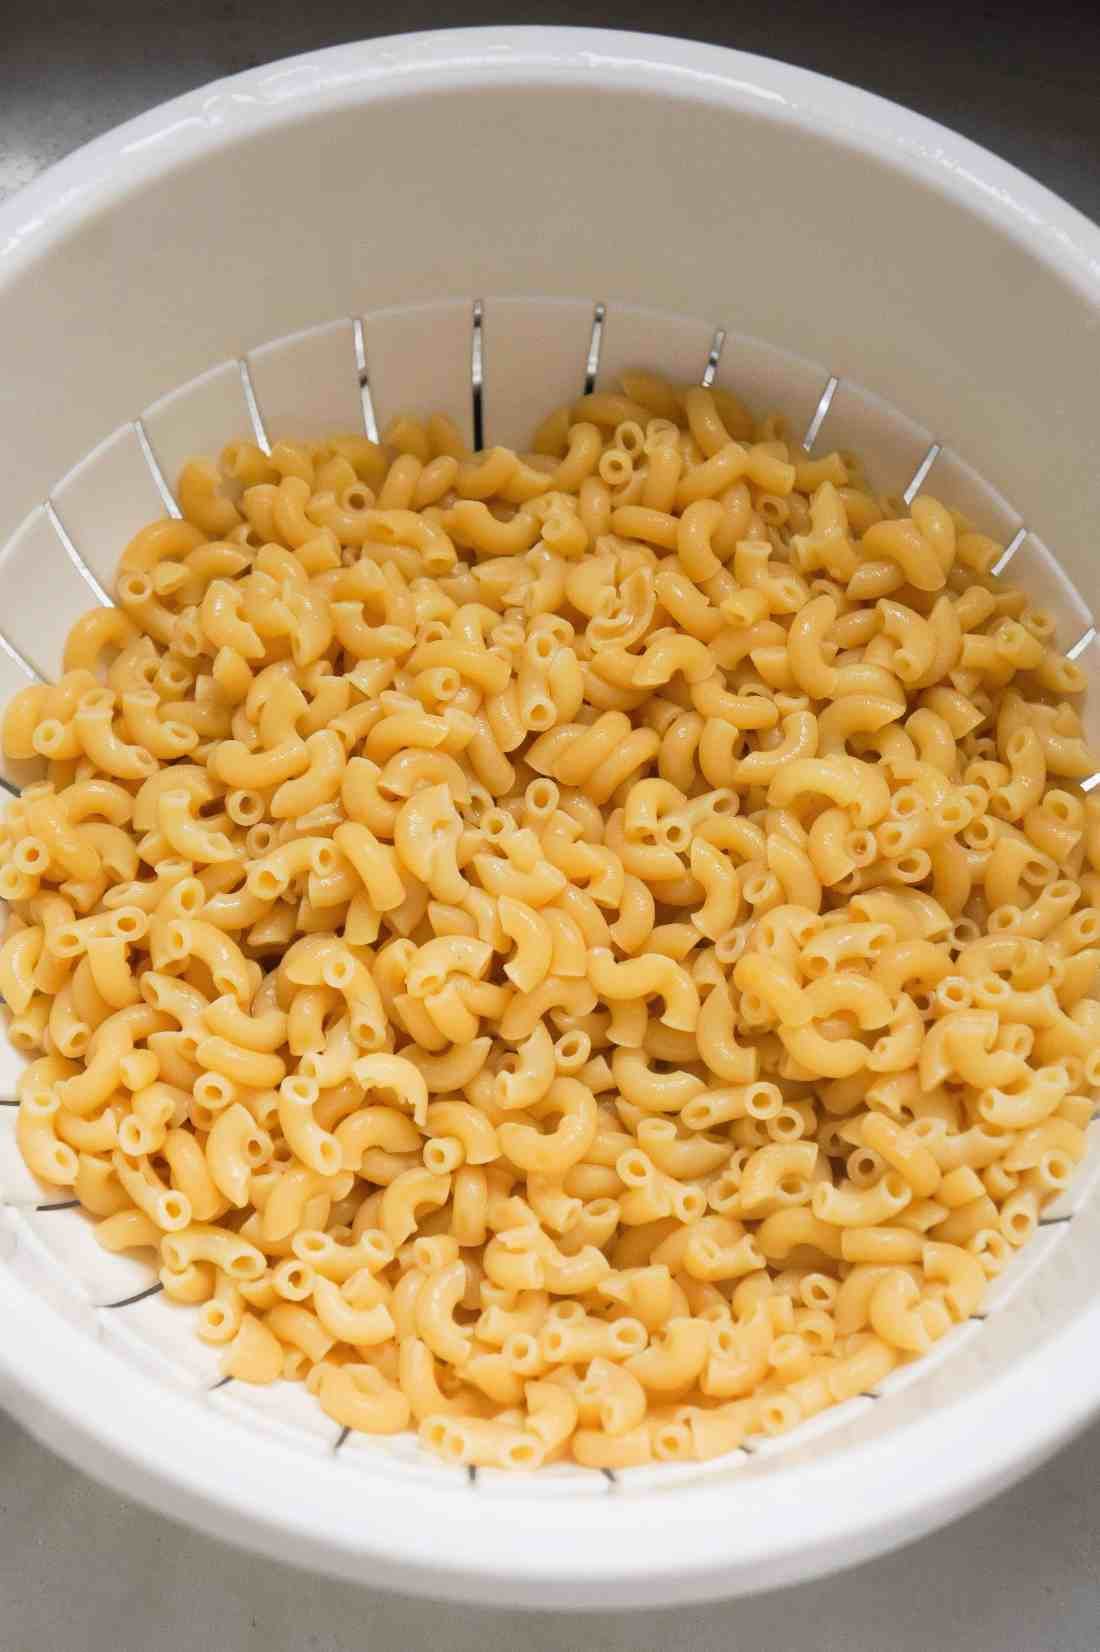 cooked macaroni for pasta salad